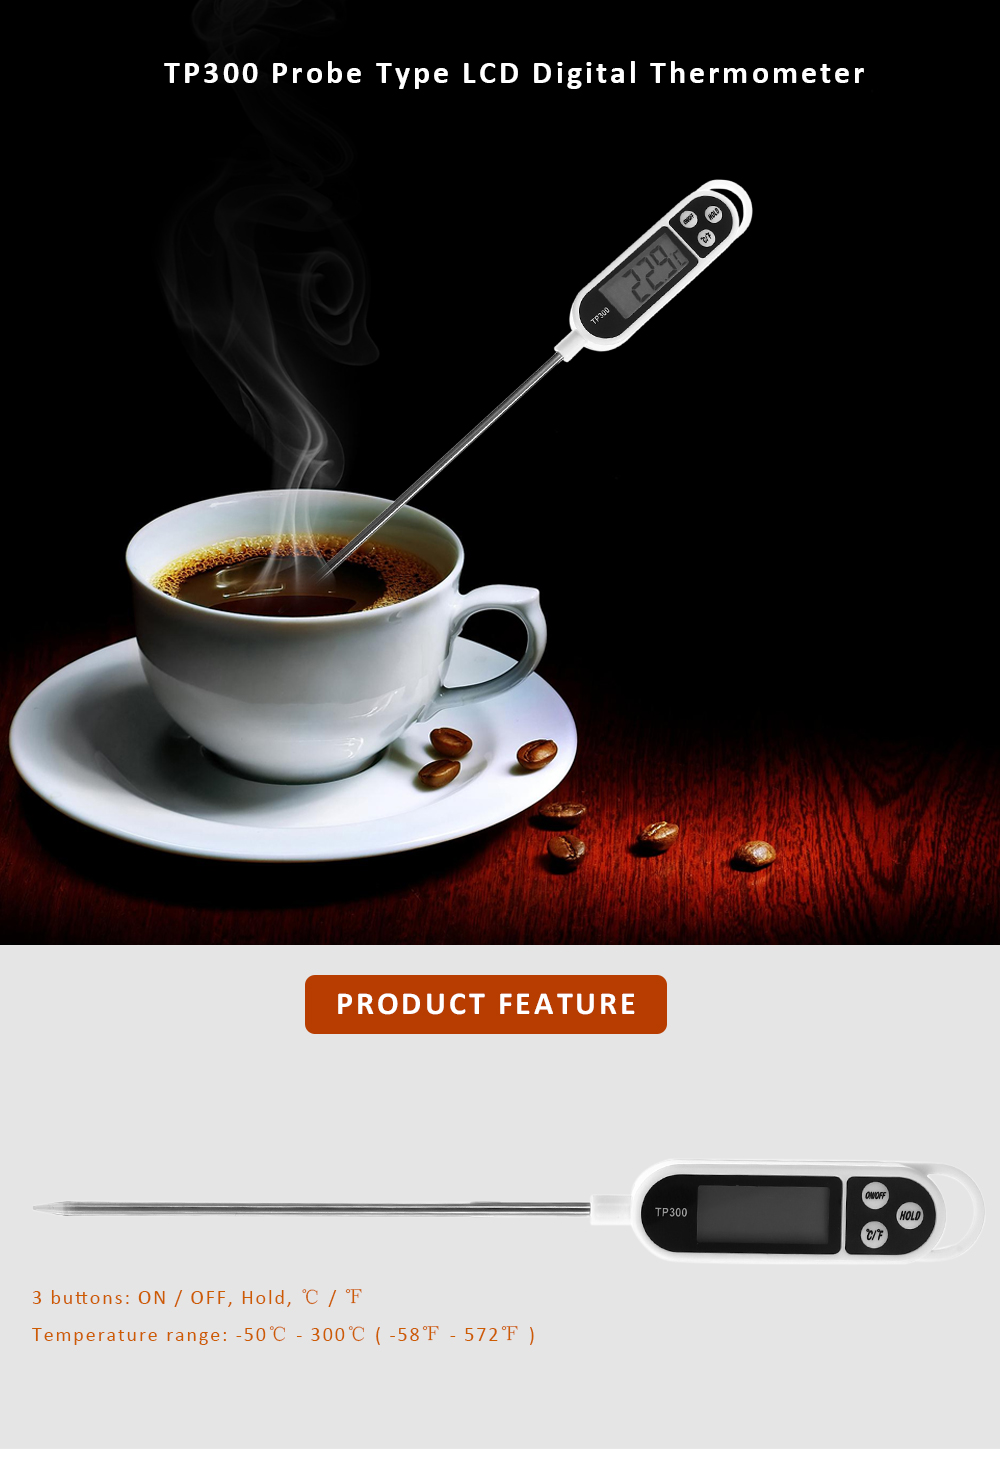 TP300 LCD Digital Thermometer Probe Type for Water / Liquid / Paste Temperature